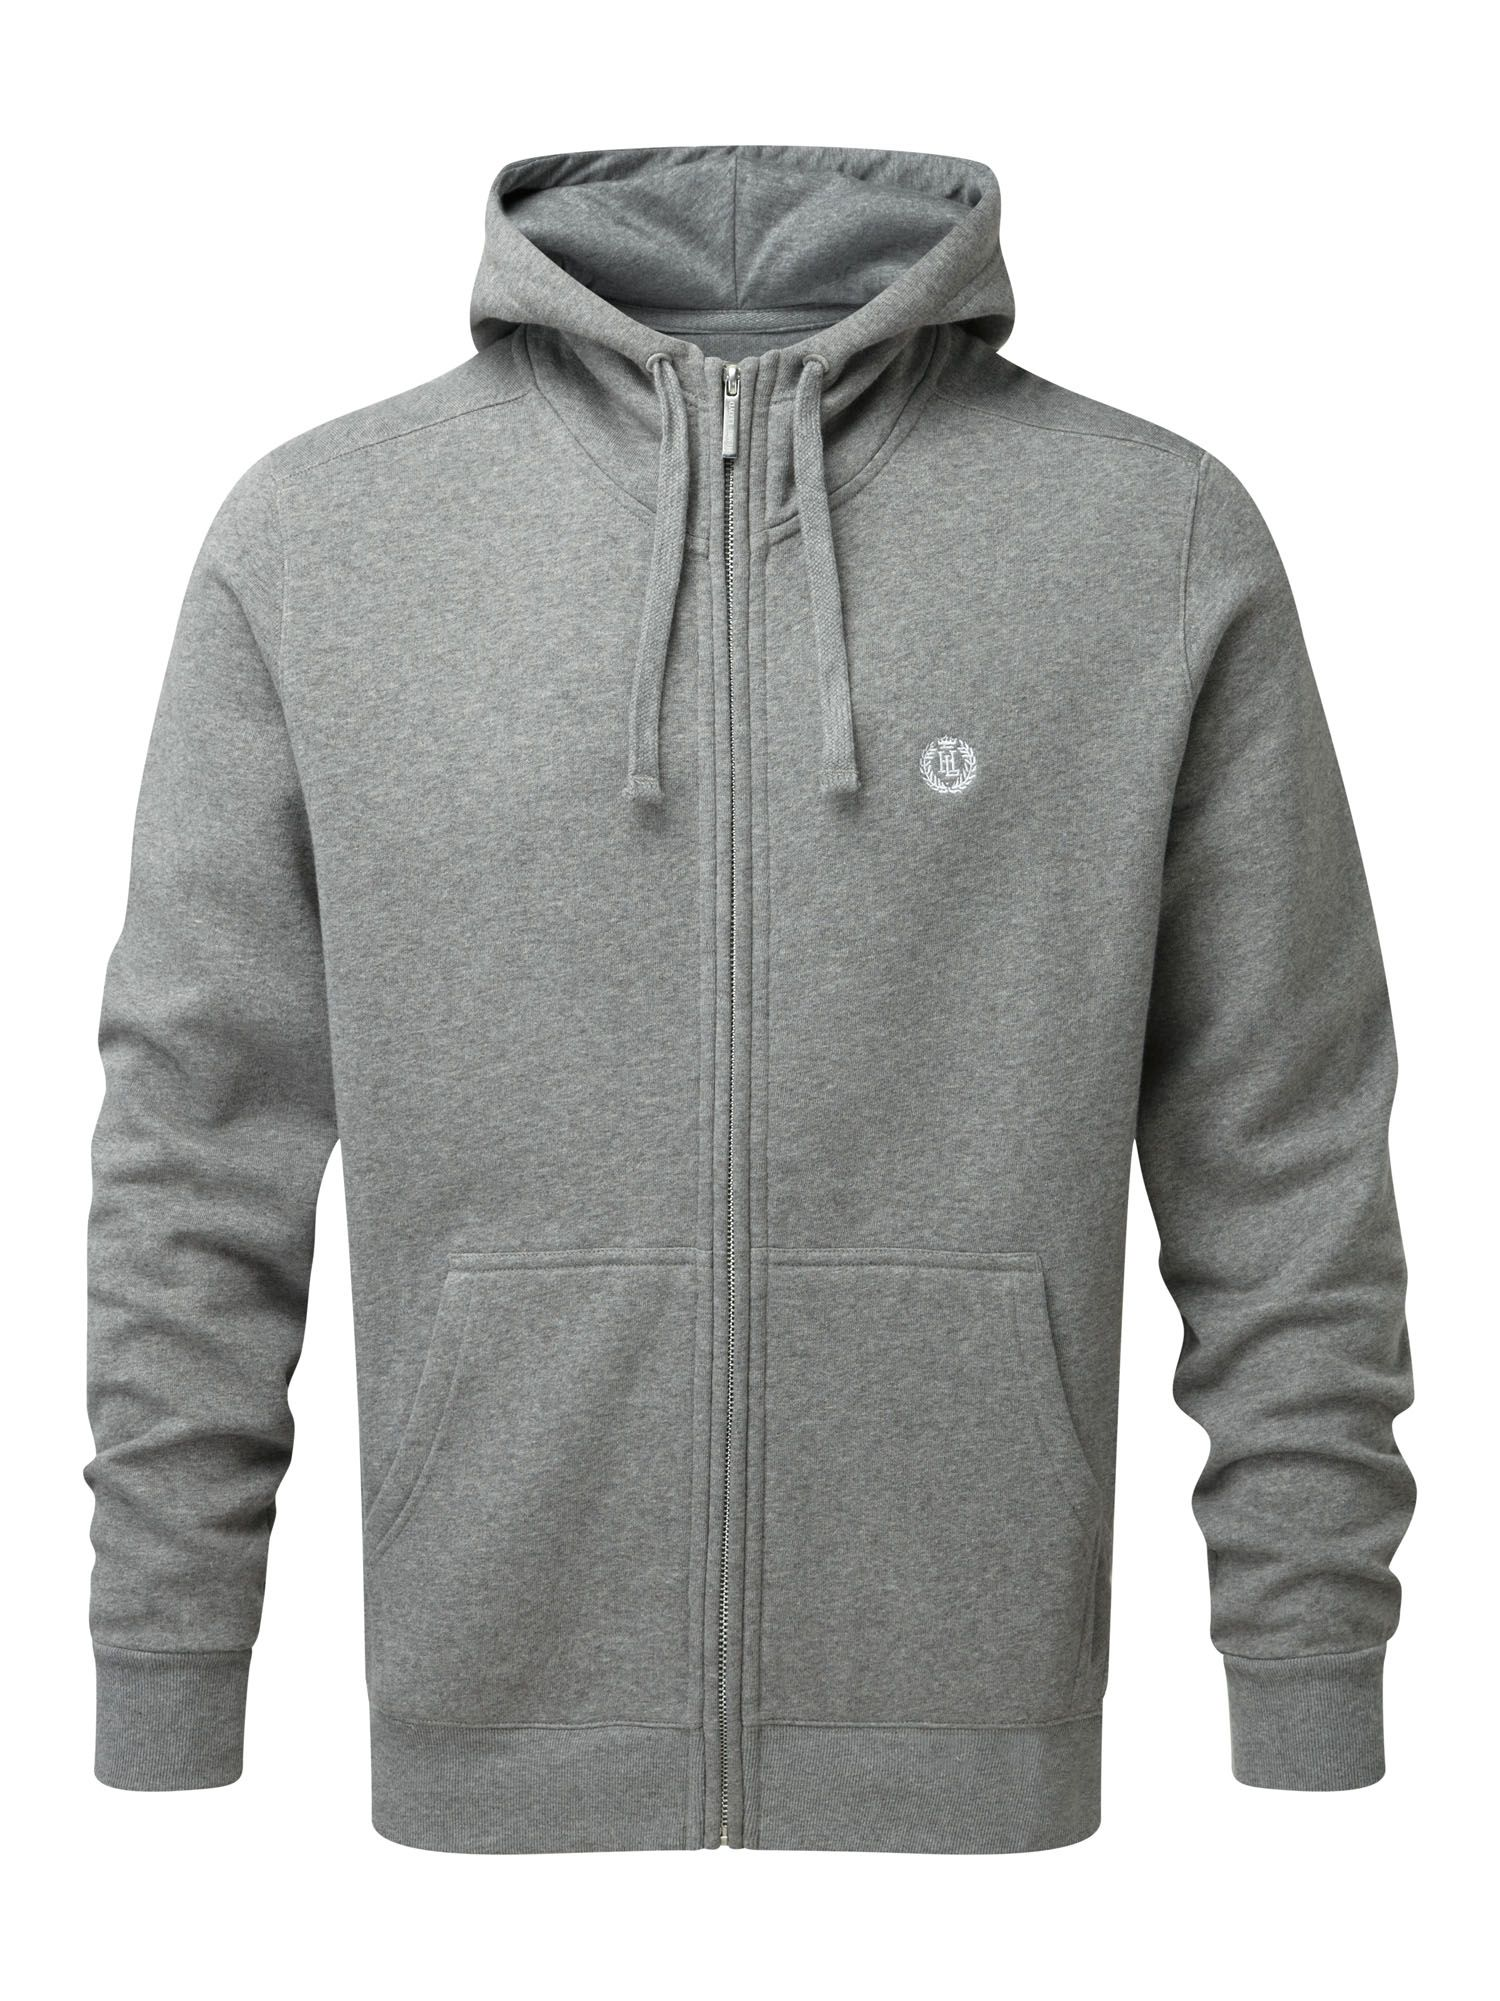 Men's Henri Lloyd Bredgar Hooded Full Zip Sweat, Grey